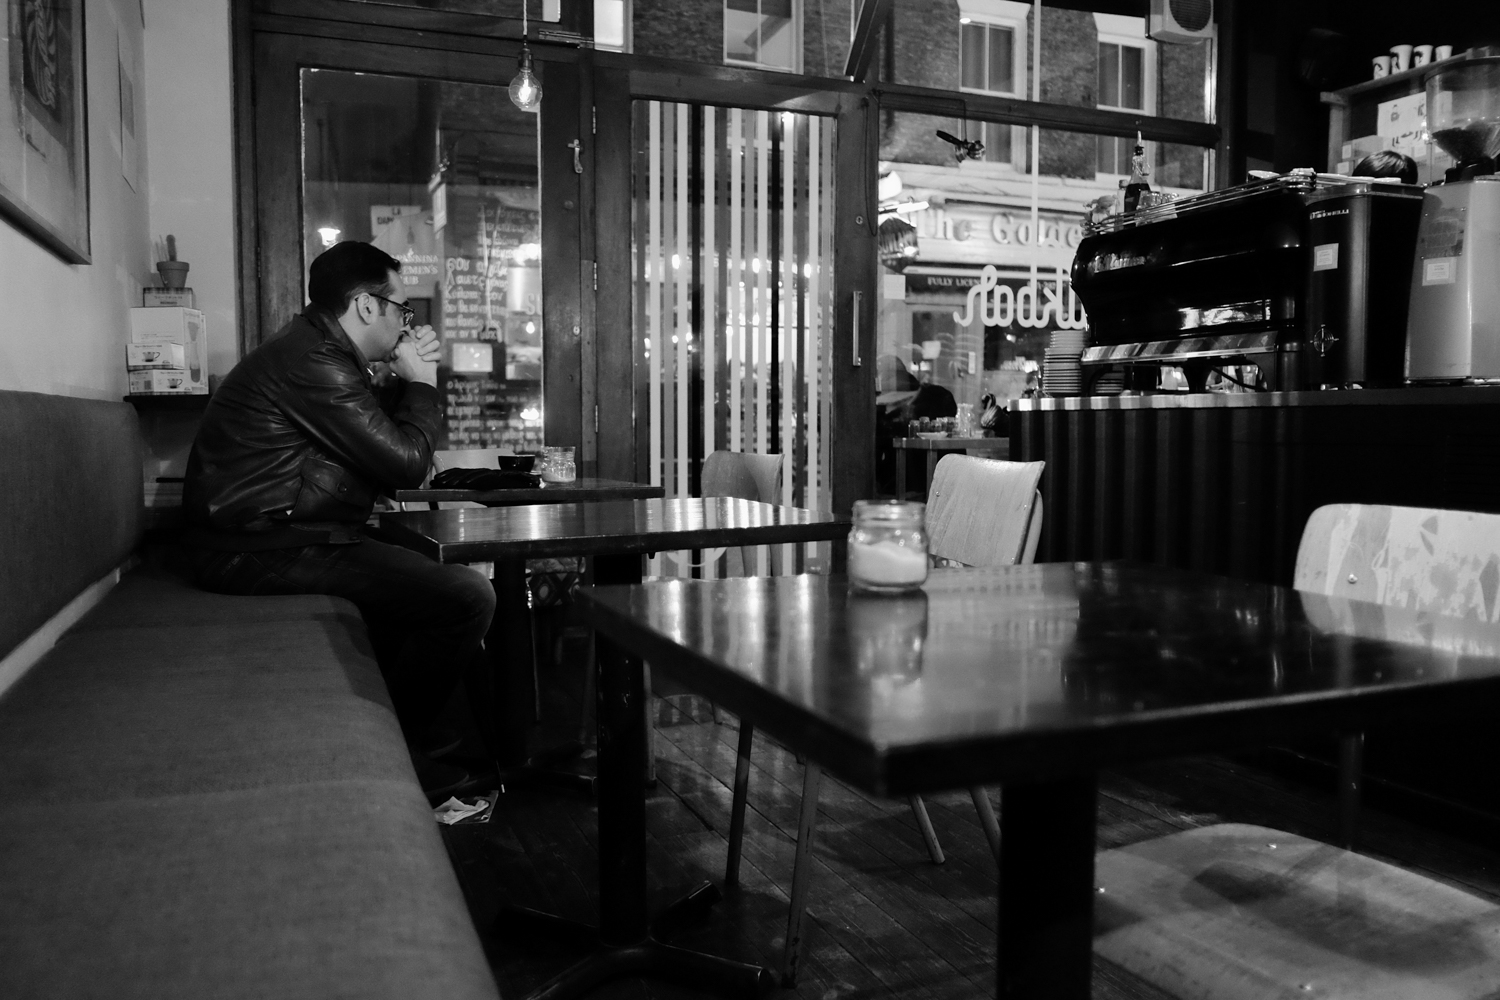 Fujifilm X-T1 jpeg file of a man drinking in the Milk Bar, London